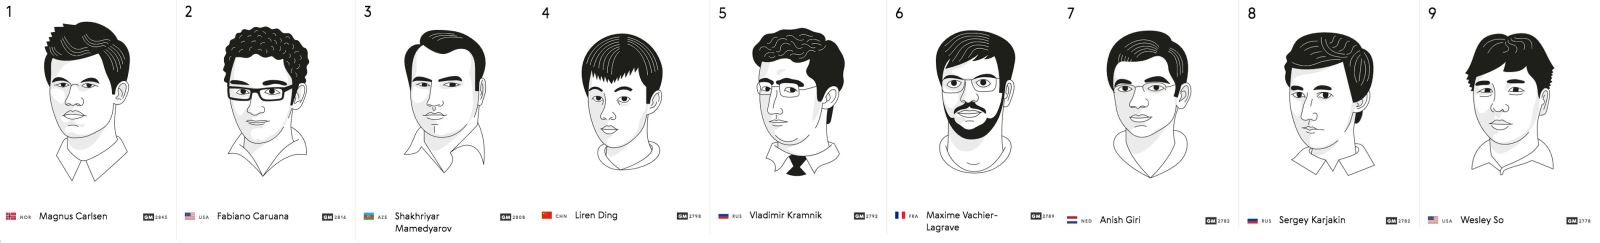 World Chess top 9